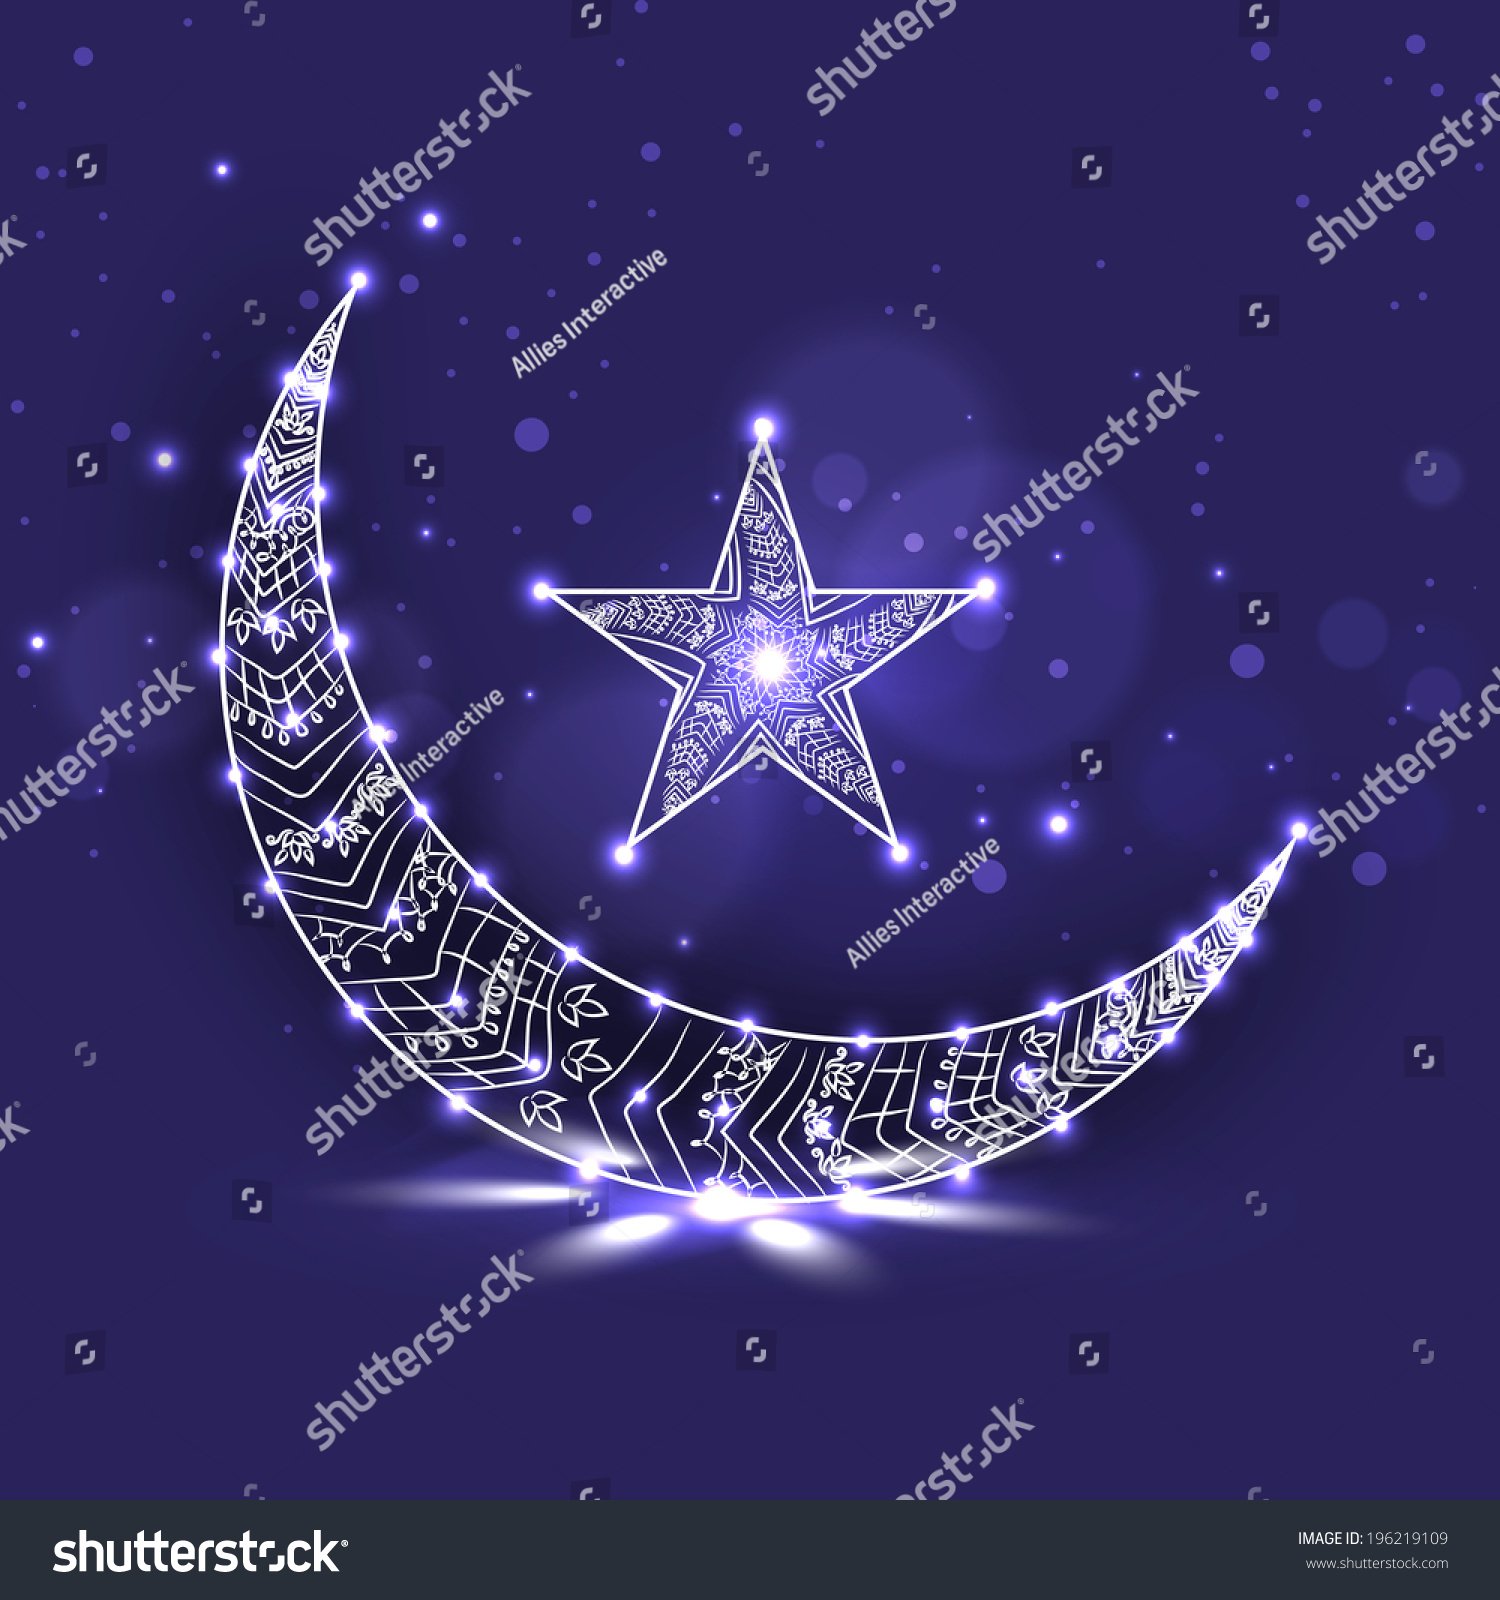 Shiny crescent moon star on purple stock vector 196219109 shutterstock shiny crescent moon and star on purple background for holy month of ramadan kareem biocorpaavc Gallery